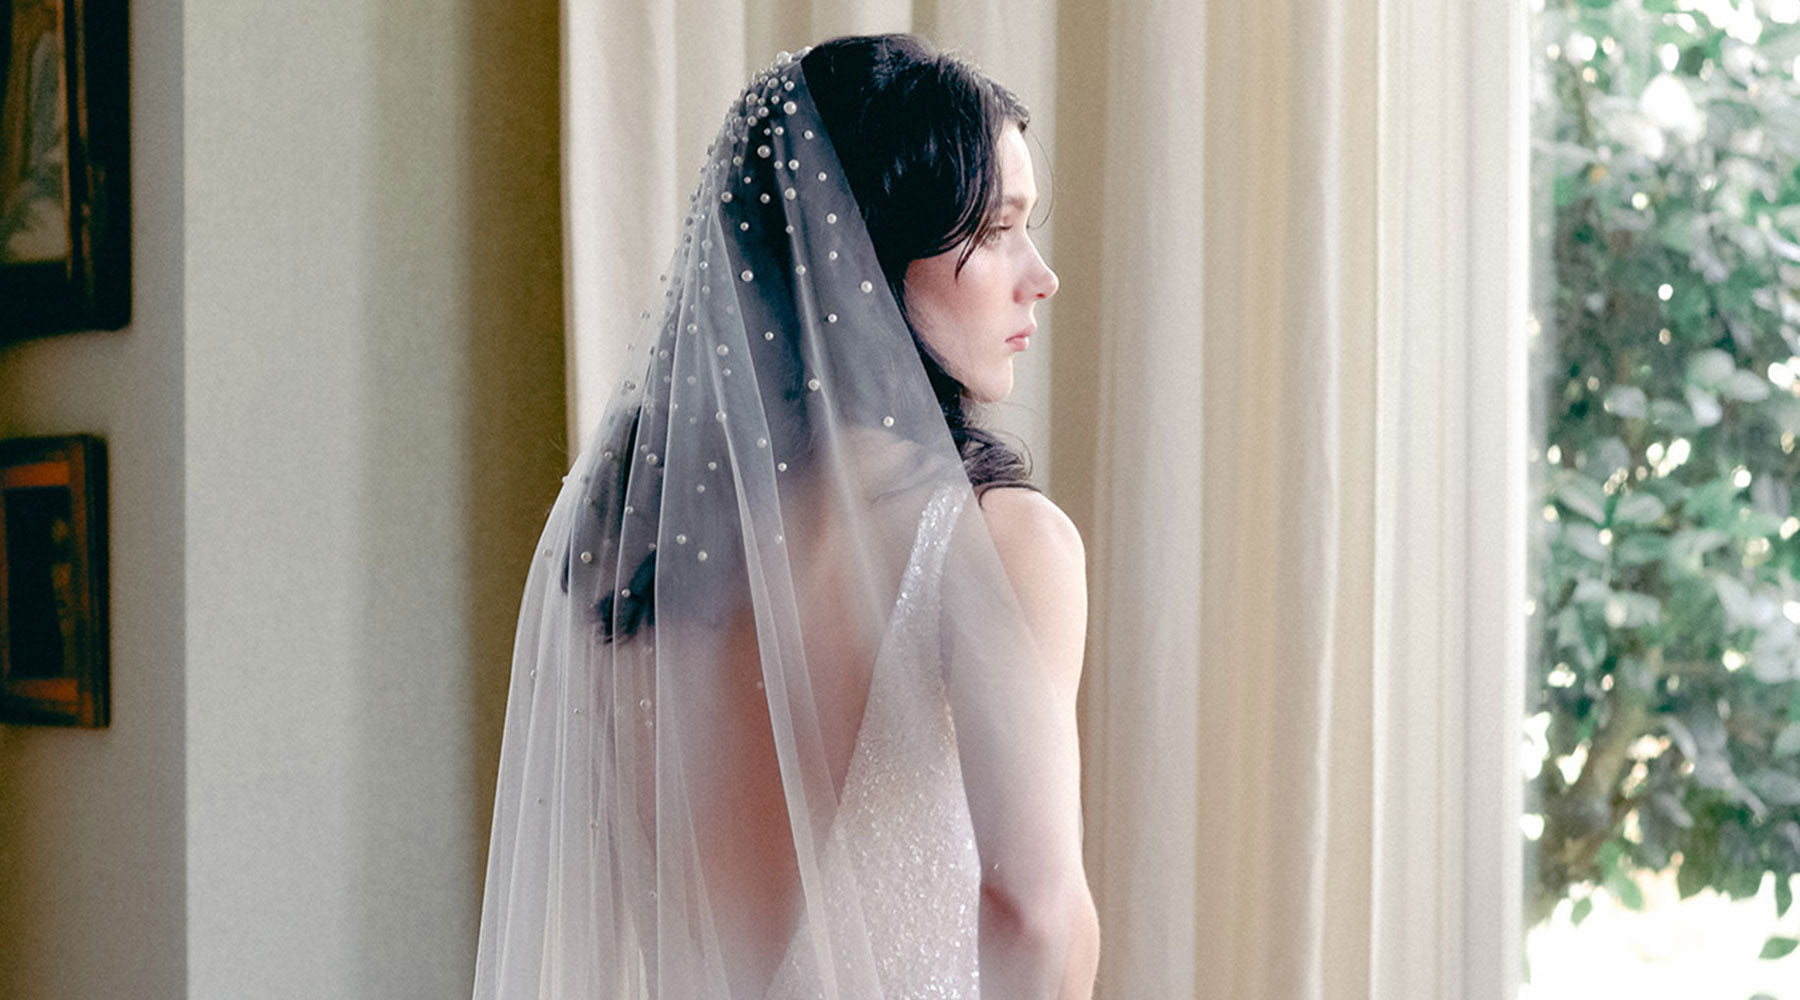 How to Style a Veil That Makes a Statement